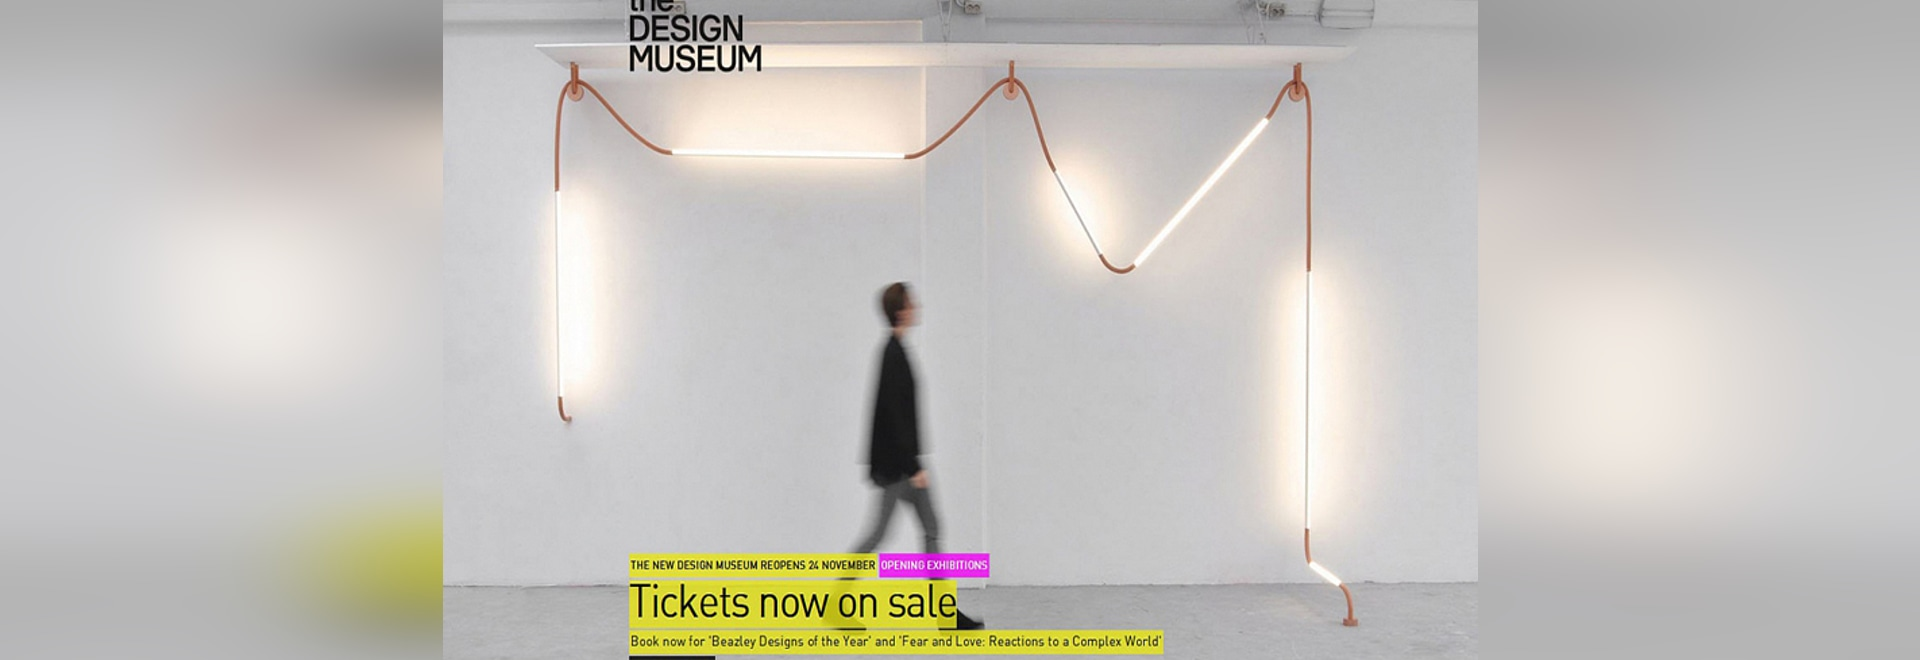 London: The Hybrid Museum